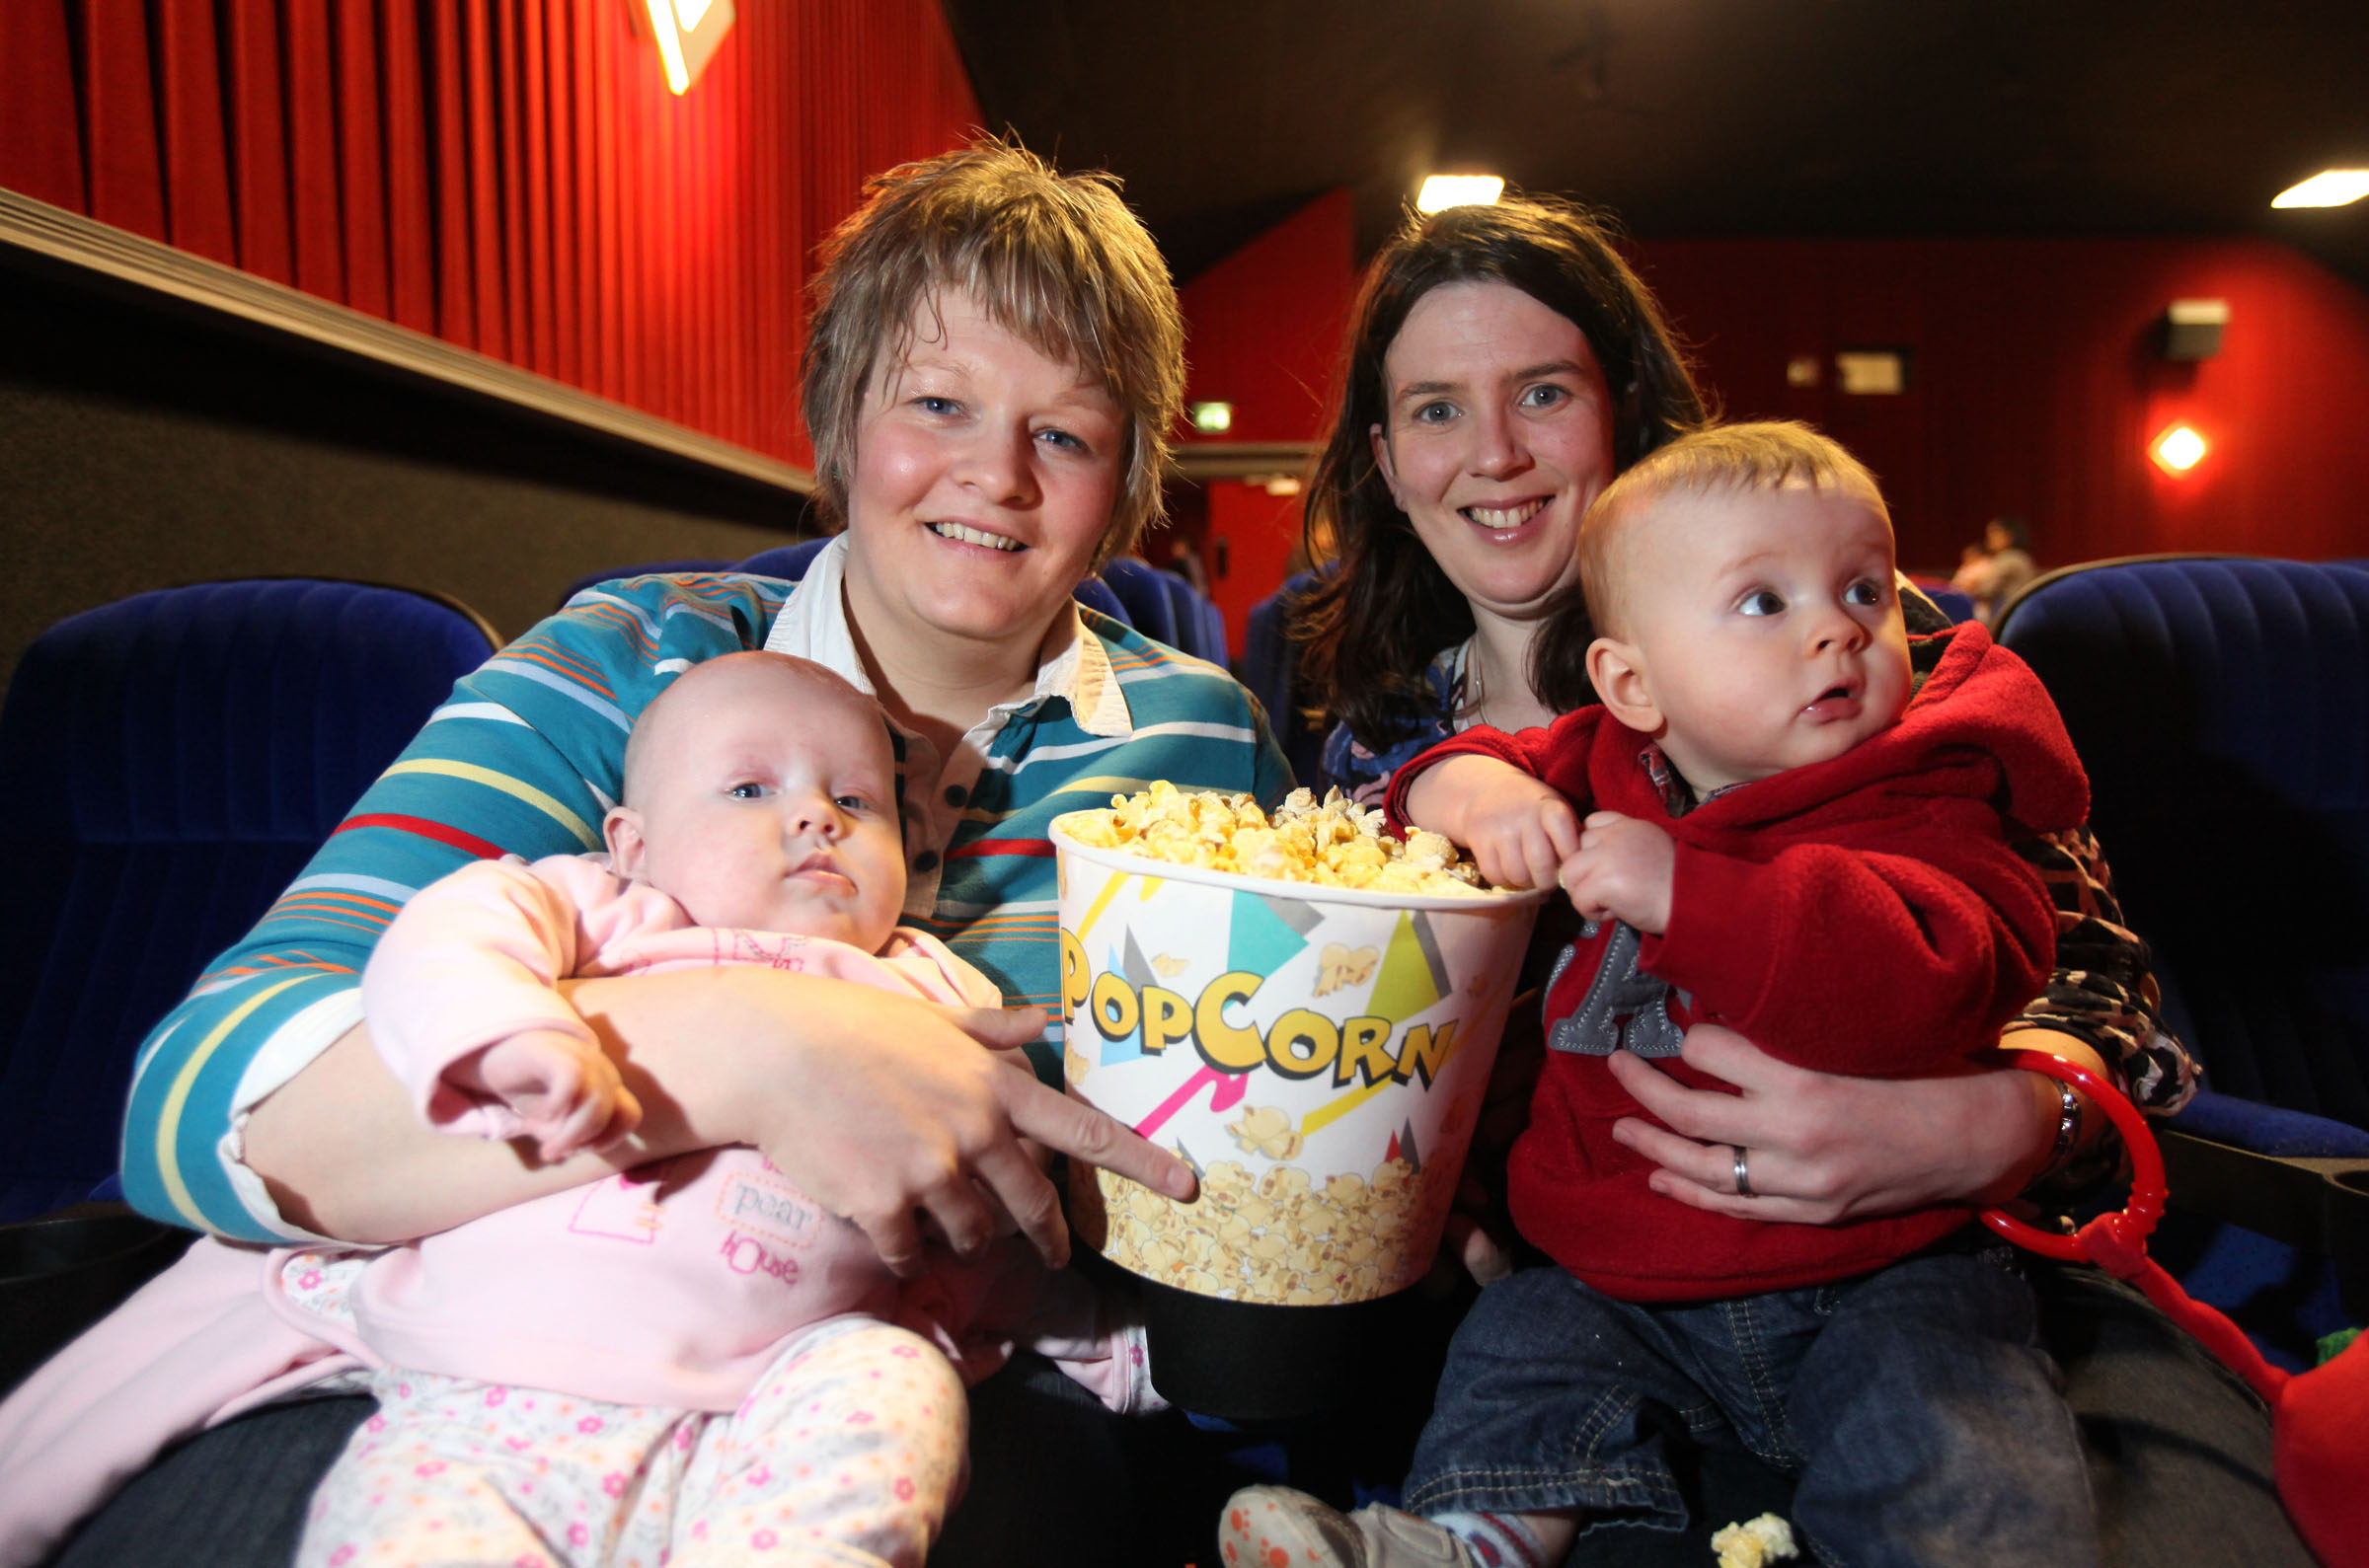 Baby's day out at Movie House